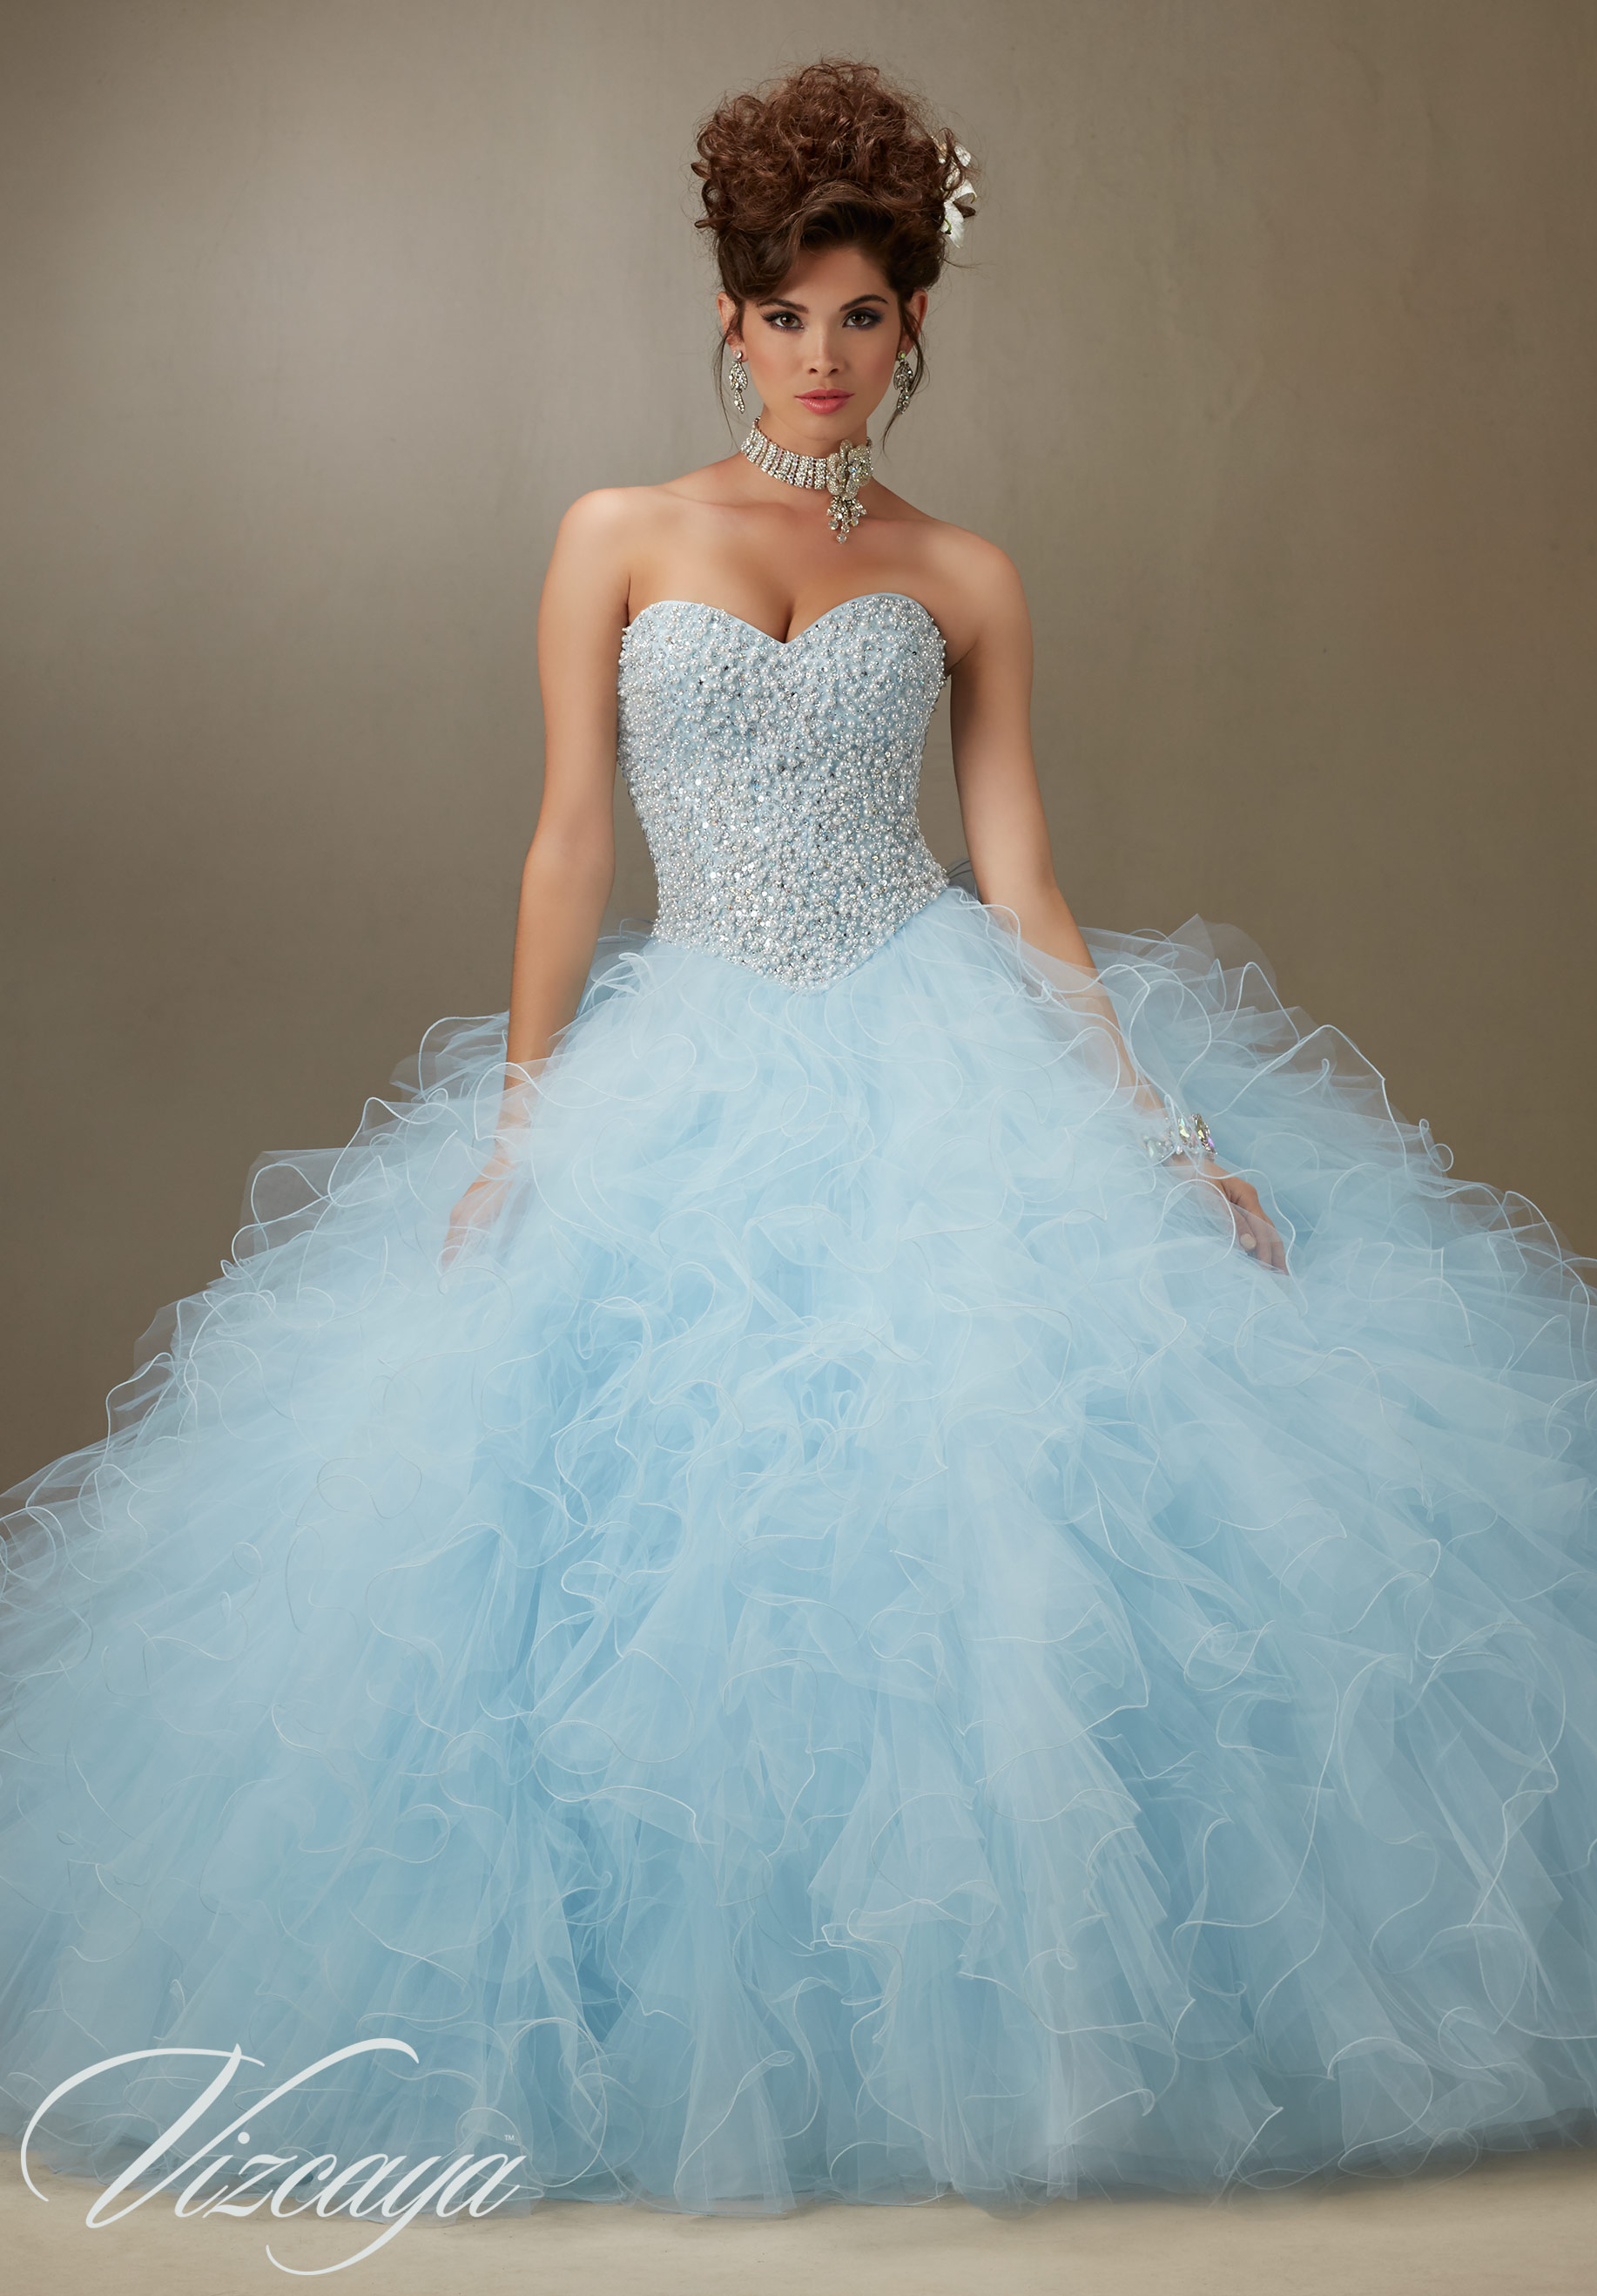 89077 Quinceanera Dresses, Vizcaya Collection - Dresses by Russo Boston